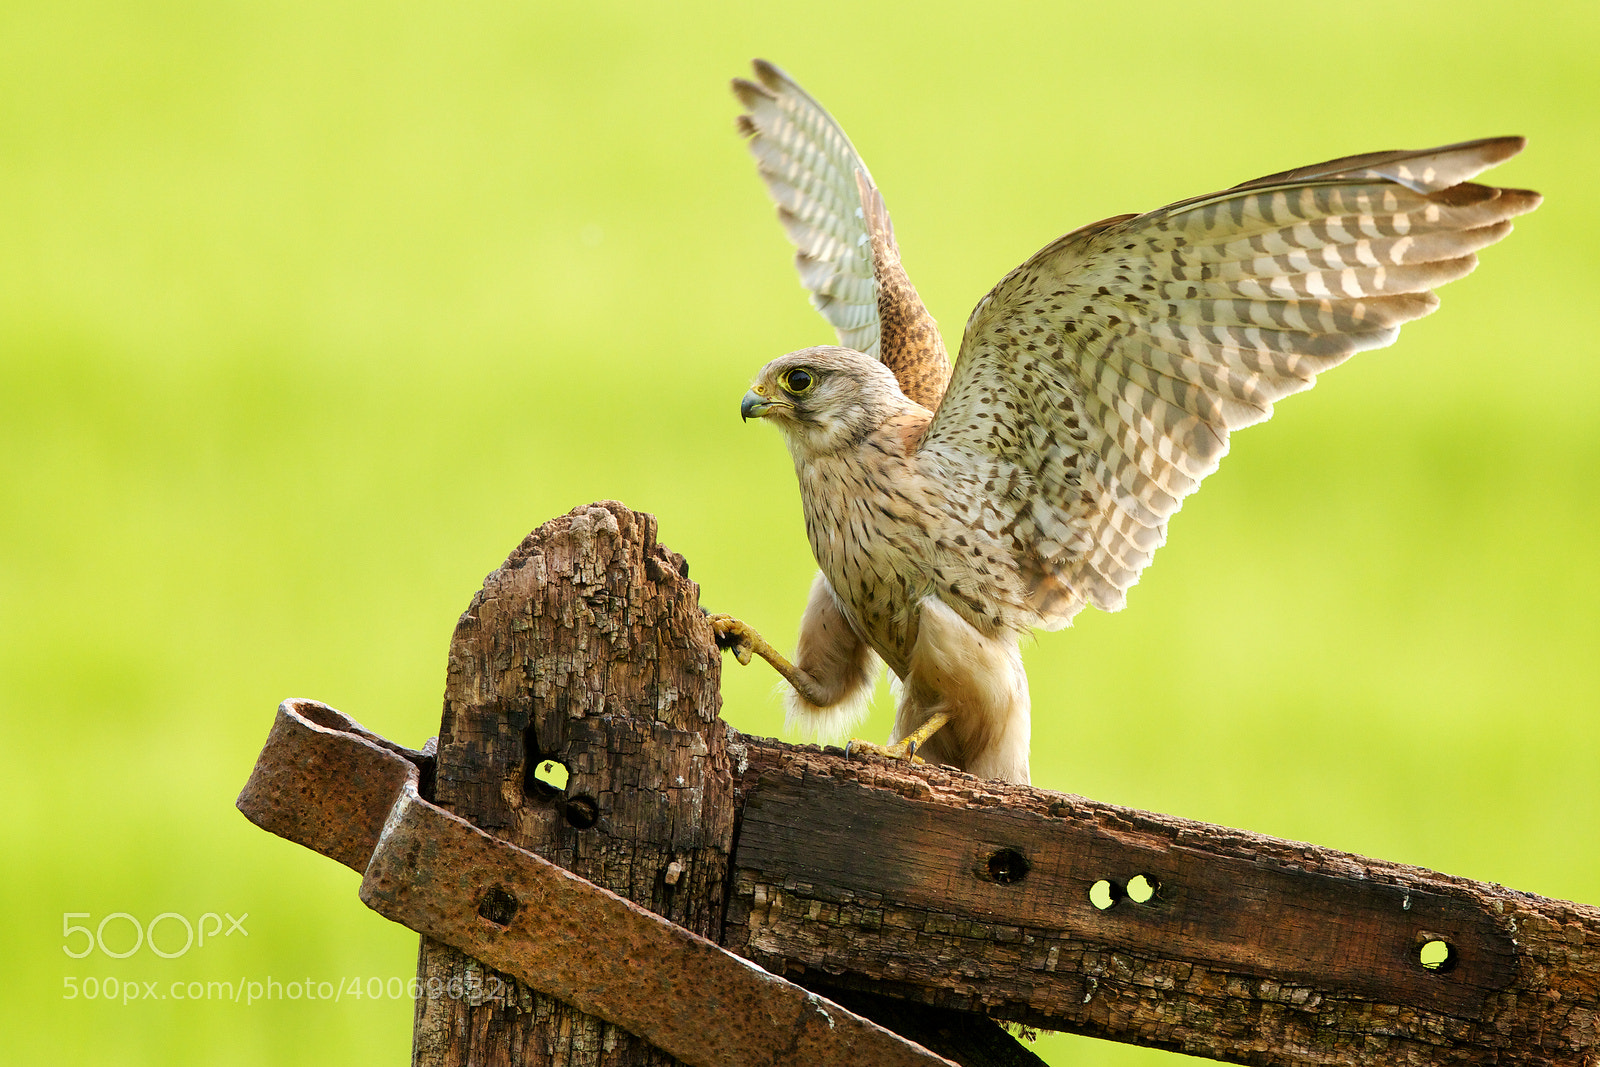 Photograph wings out, leg up... by Mark Bridger on 500px